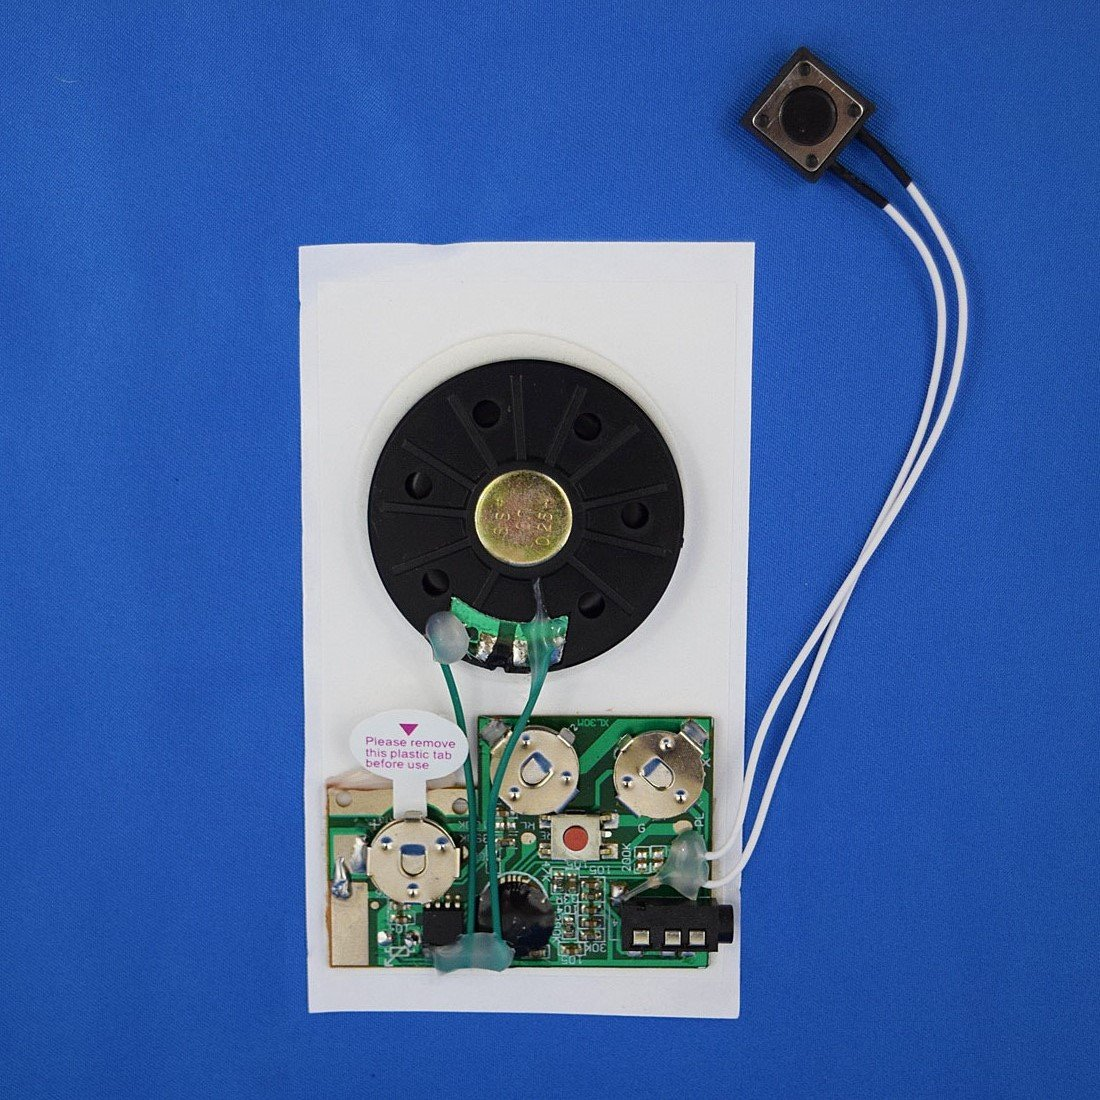 Re Recordable Push Button Sound Module Chip 104 Seconds Wiring A Garage Electrical Page 2 Diy Chatroom Home Improvement Office Products